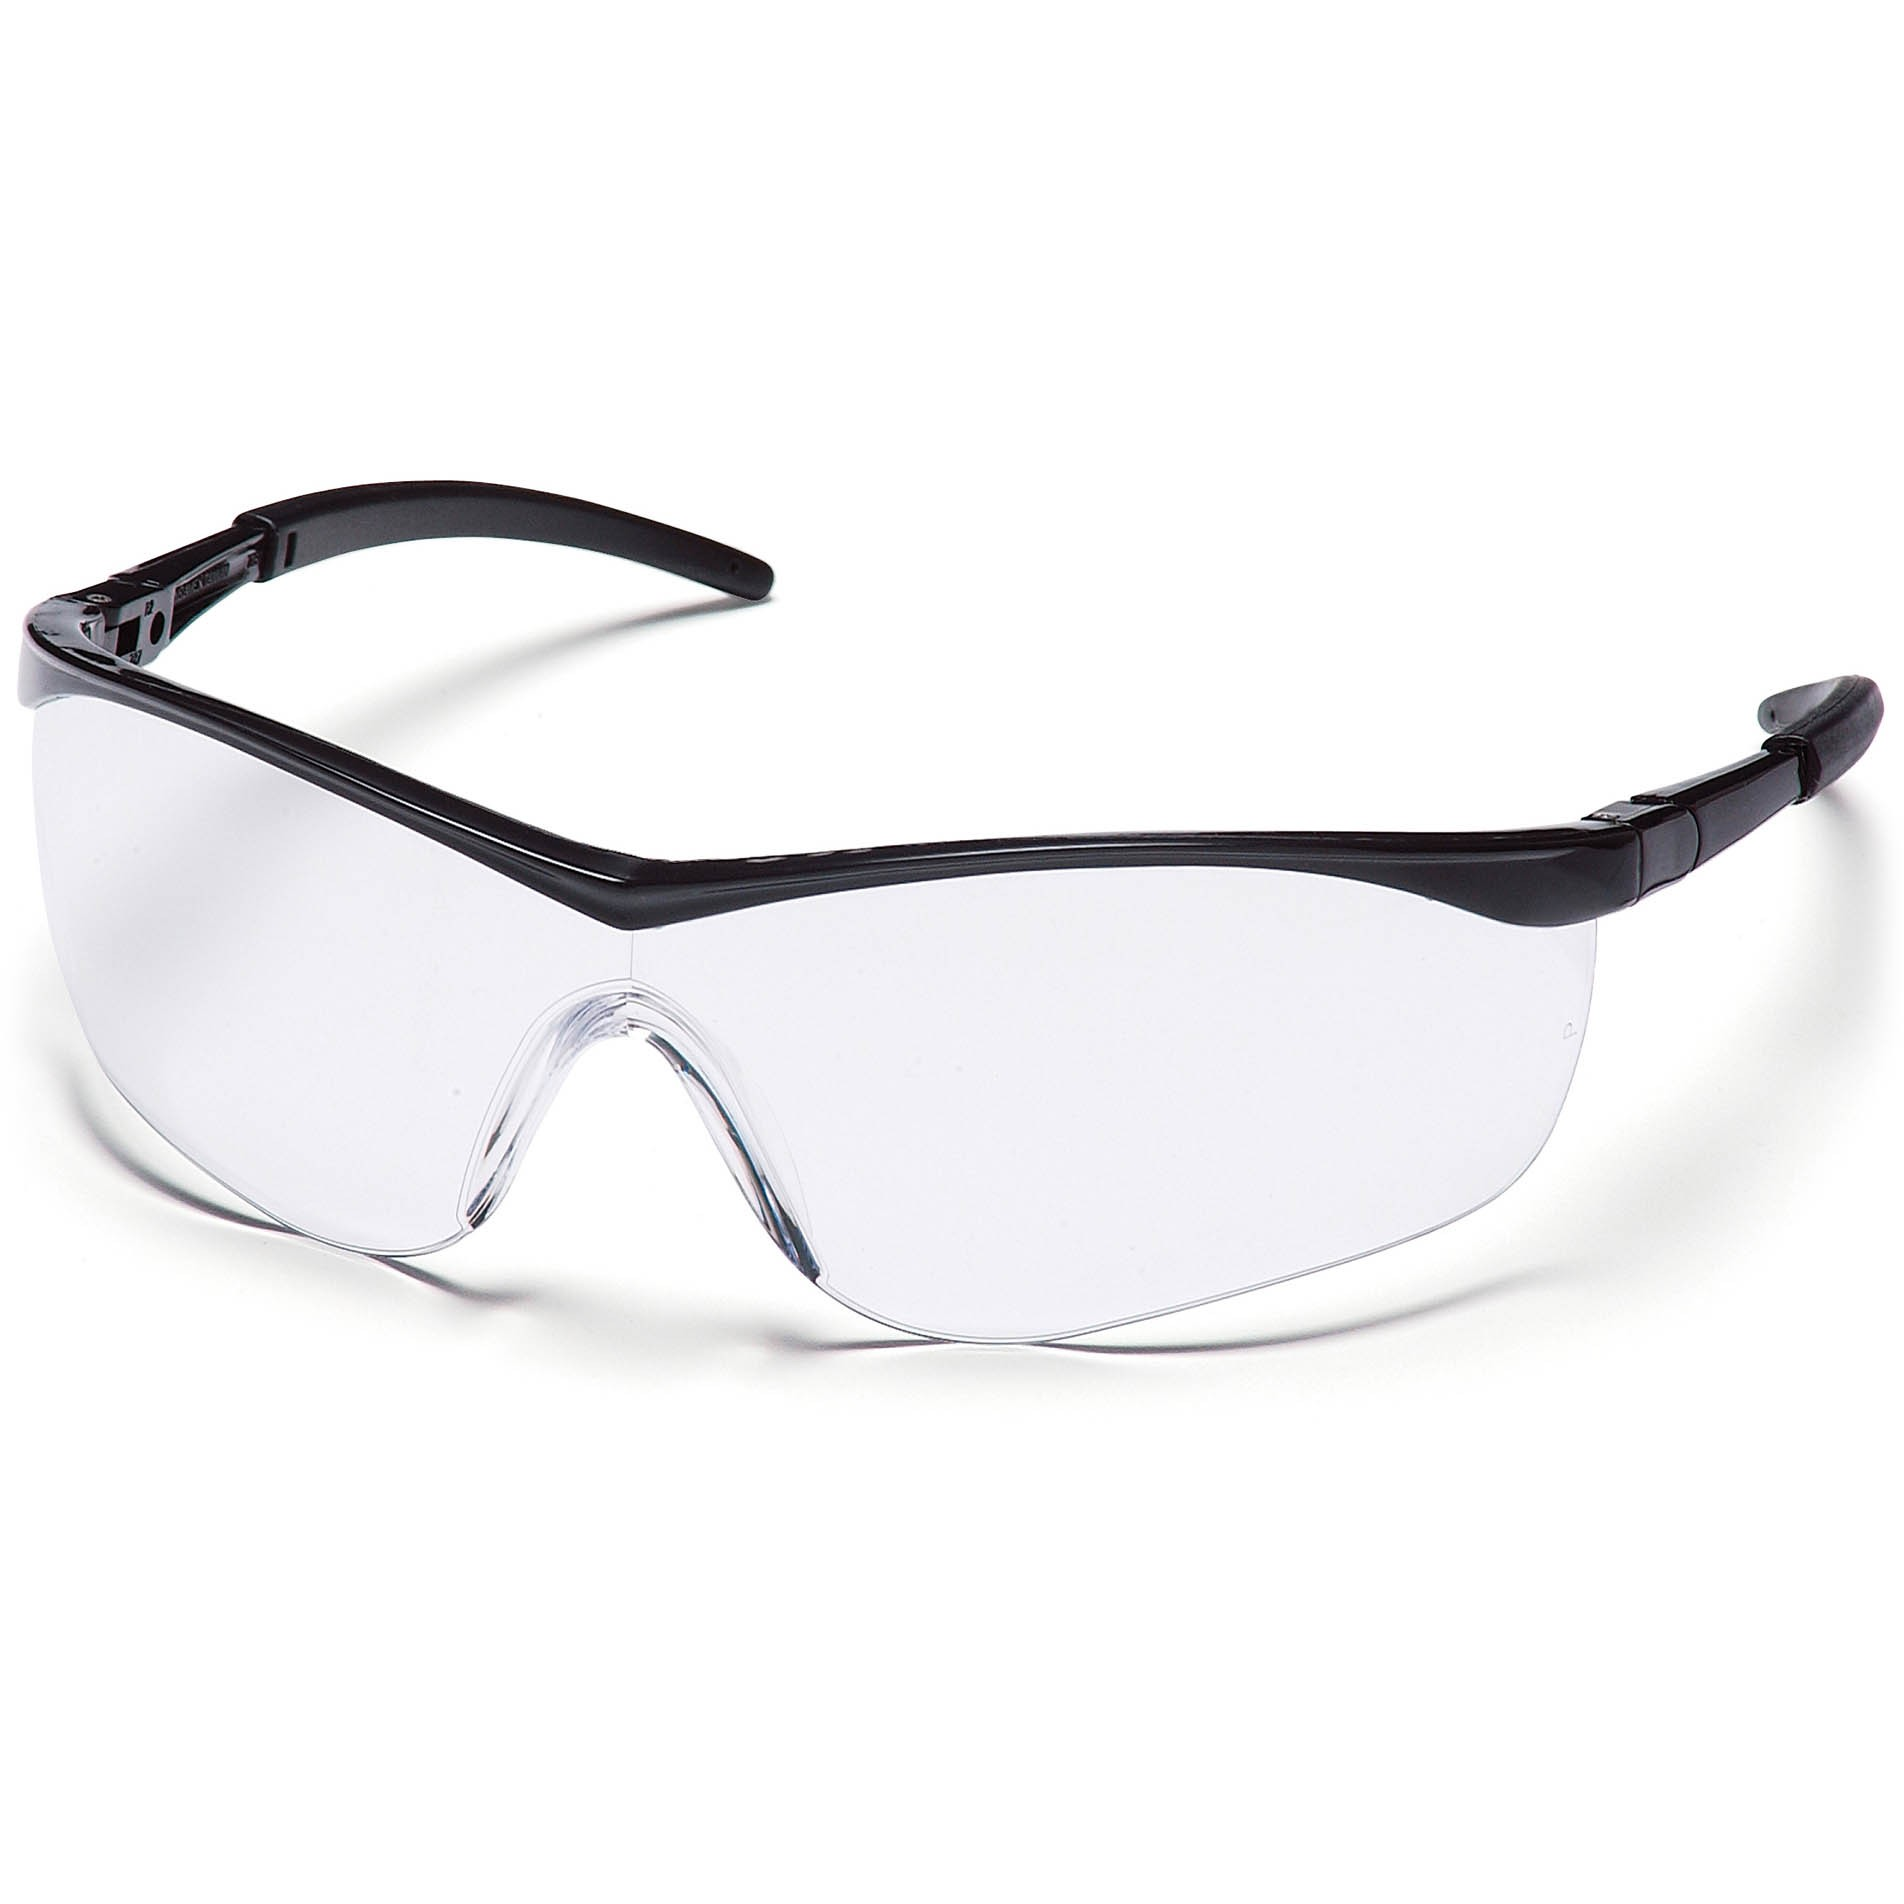 Black Frame Glasses Clear Lens : Pyramex Mayan Safety Glasses - Black Frame - Clear Lens ...